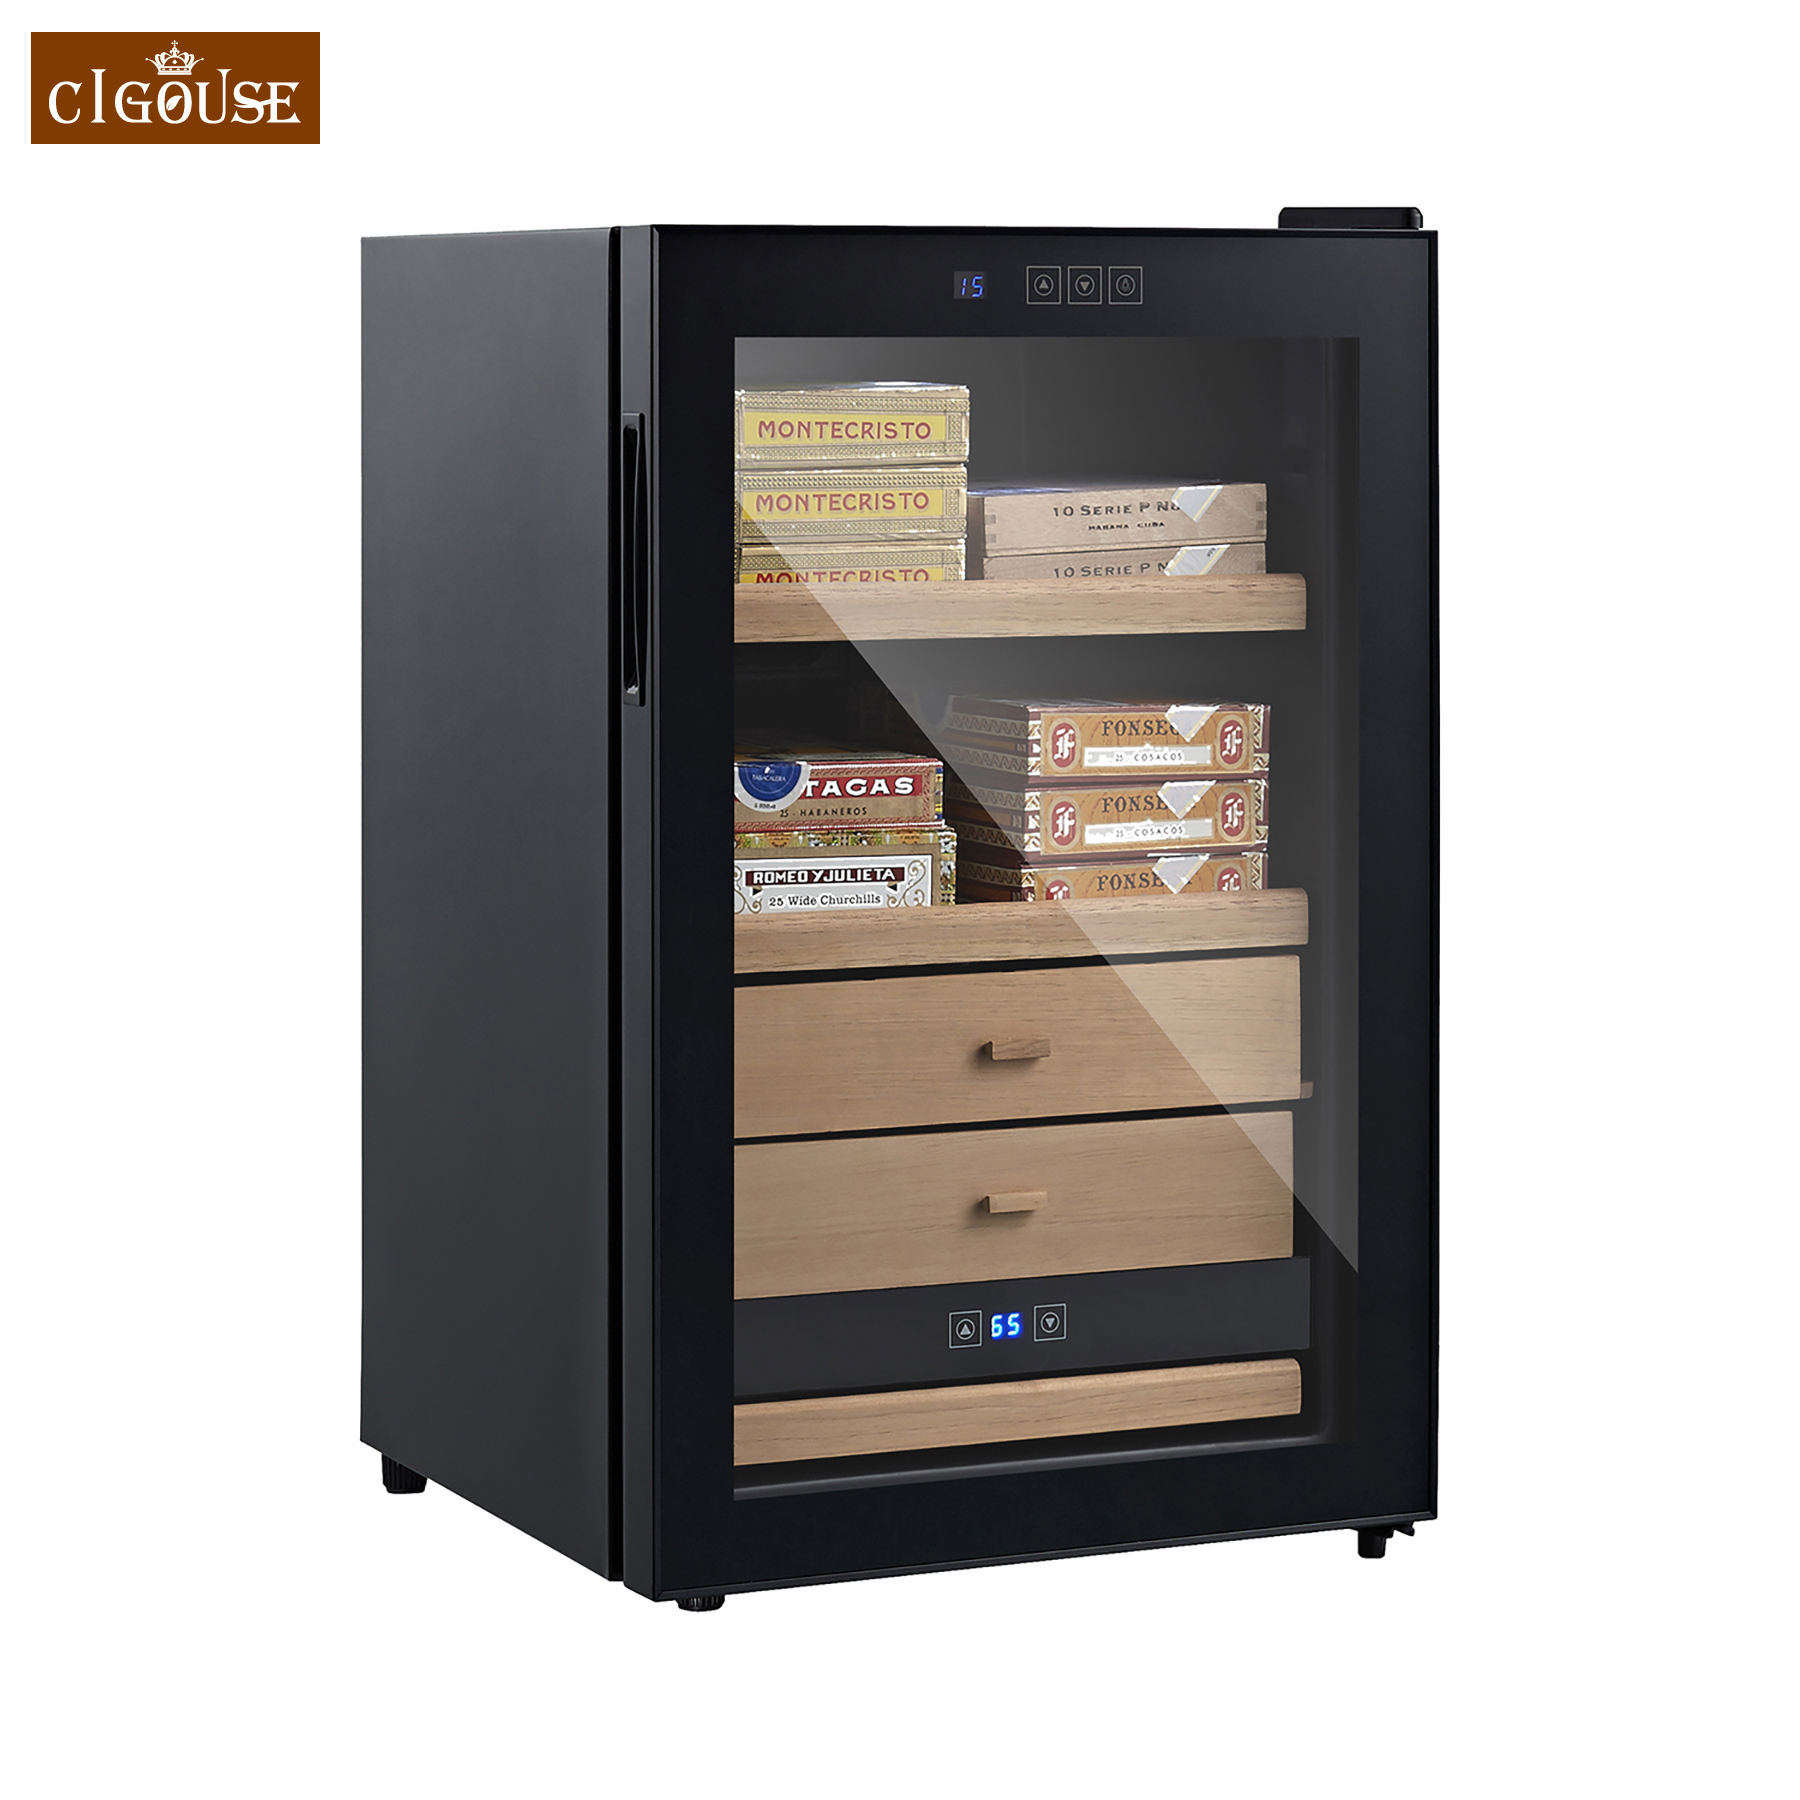 Noise-free CIGOUSE Thermoelectric Cigar Humidor CT65A